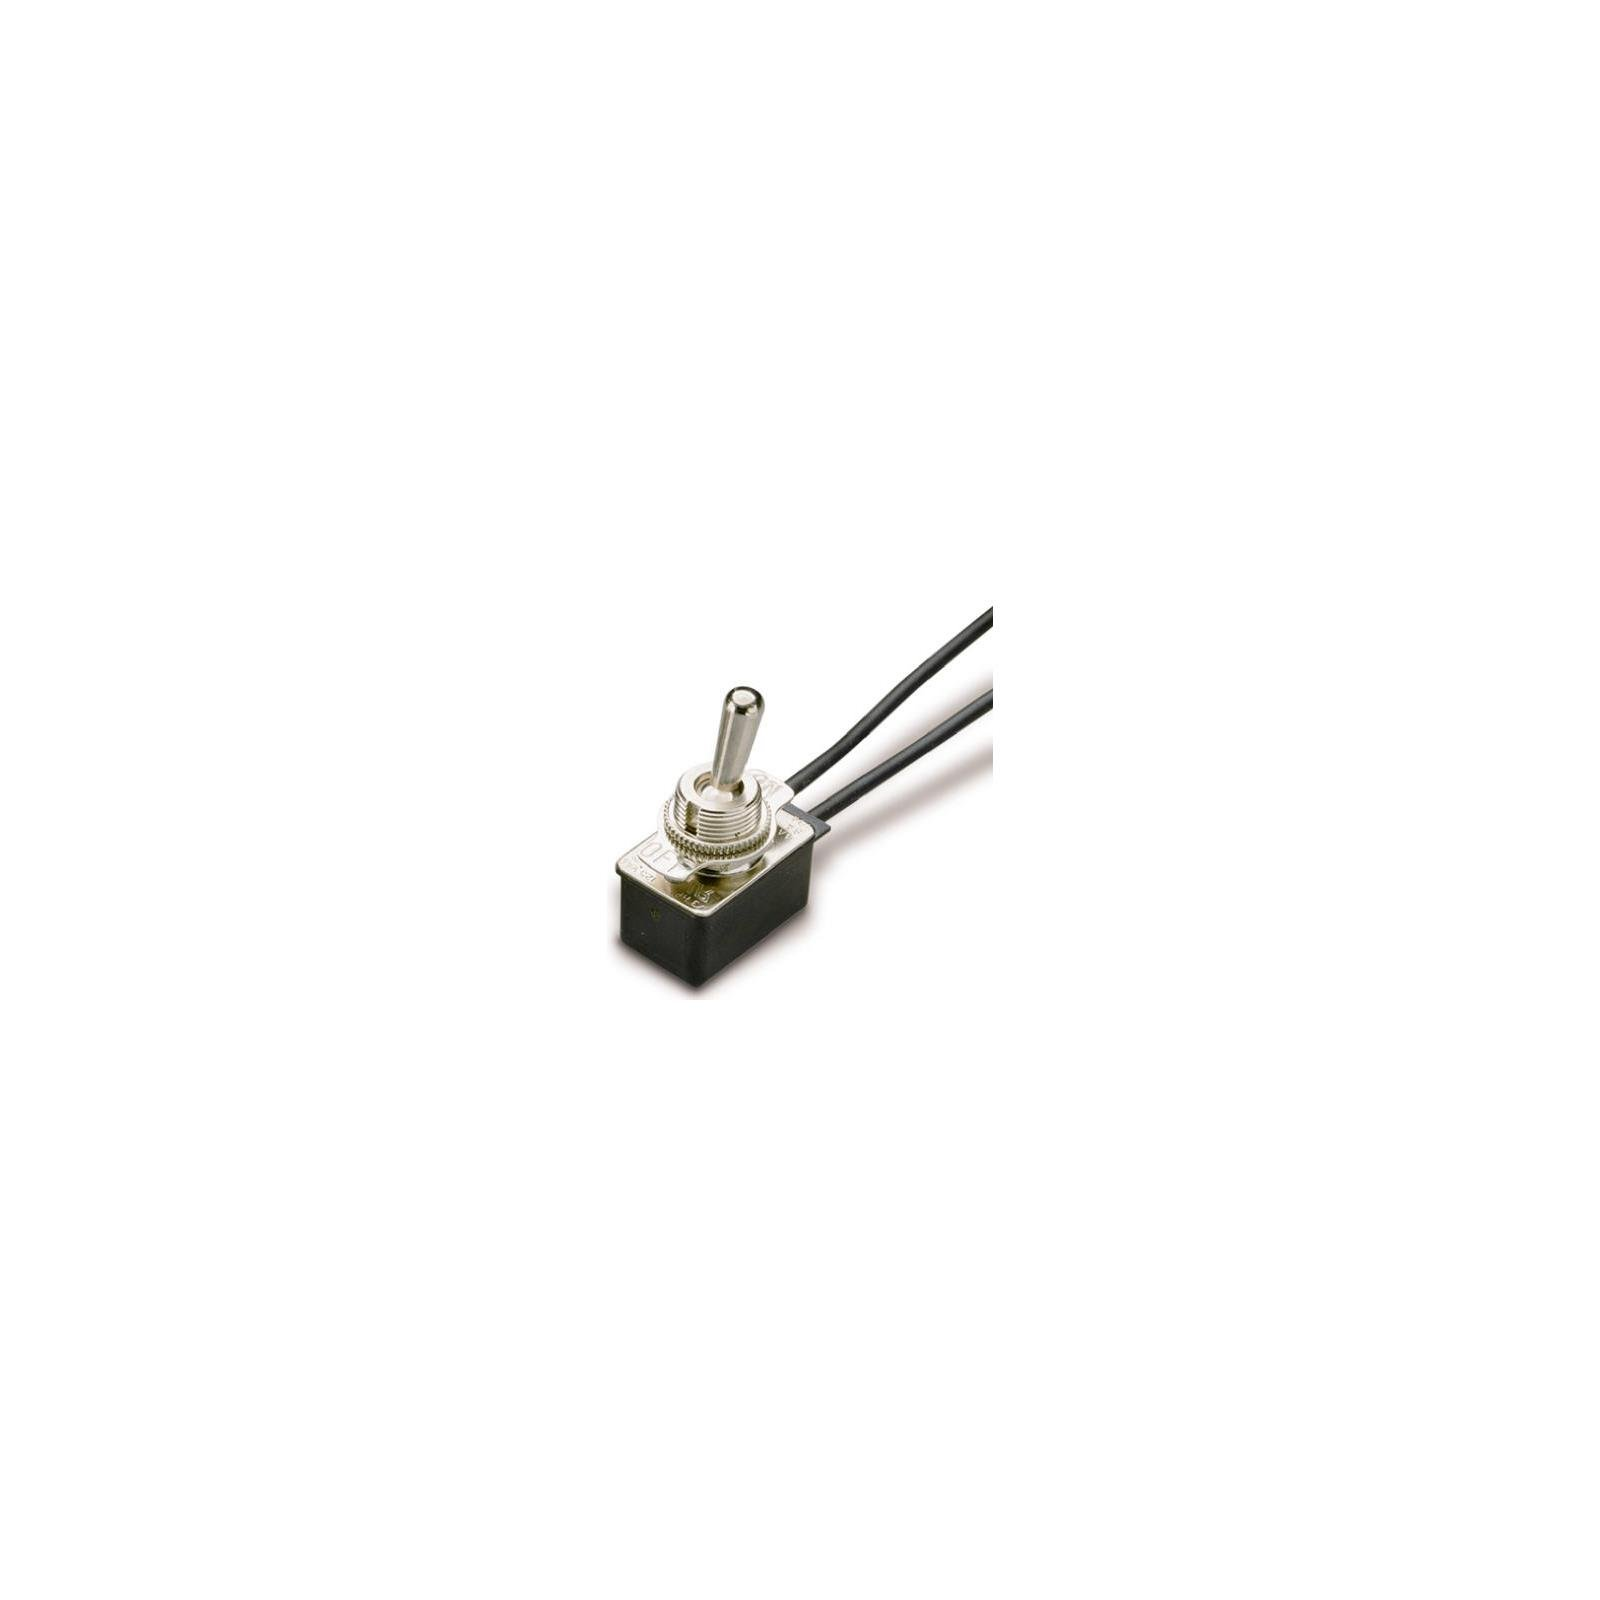 Gardner Bender GSW-18 Toggle Switch, Medium Duty - Quantity 5 by Gardner Bender